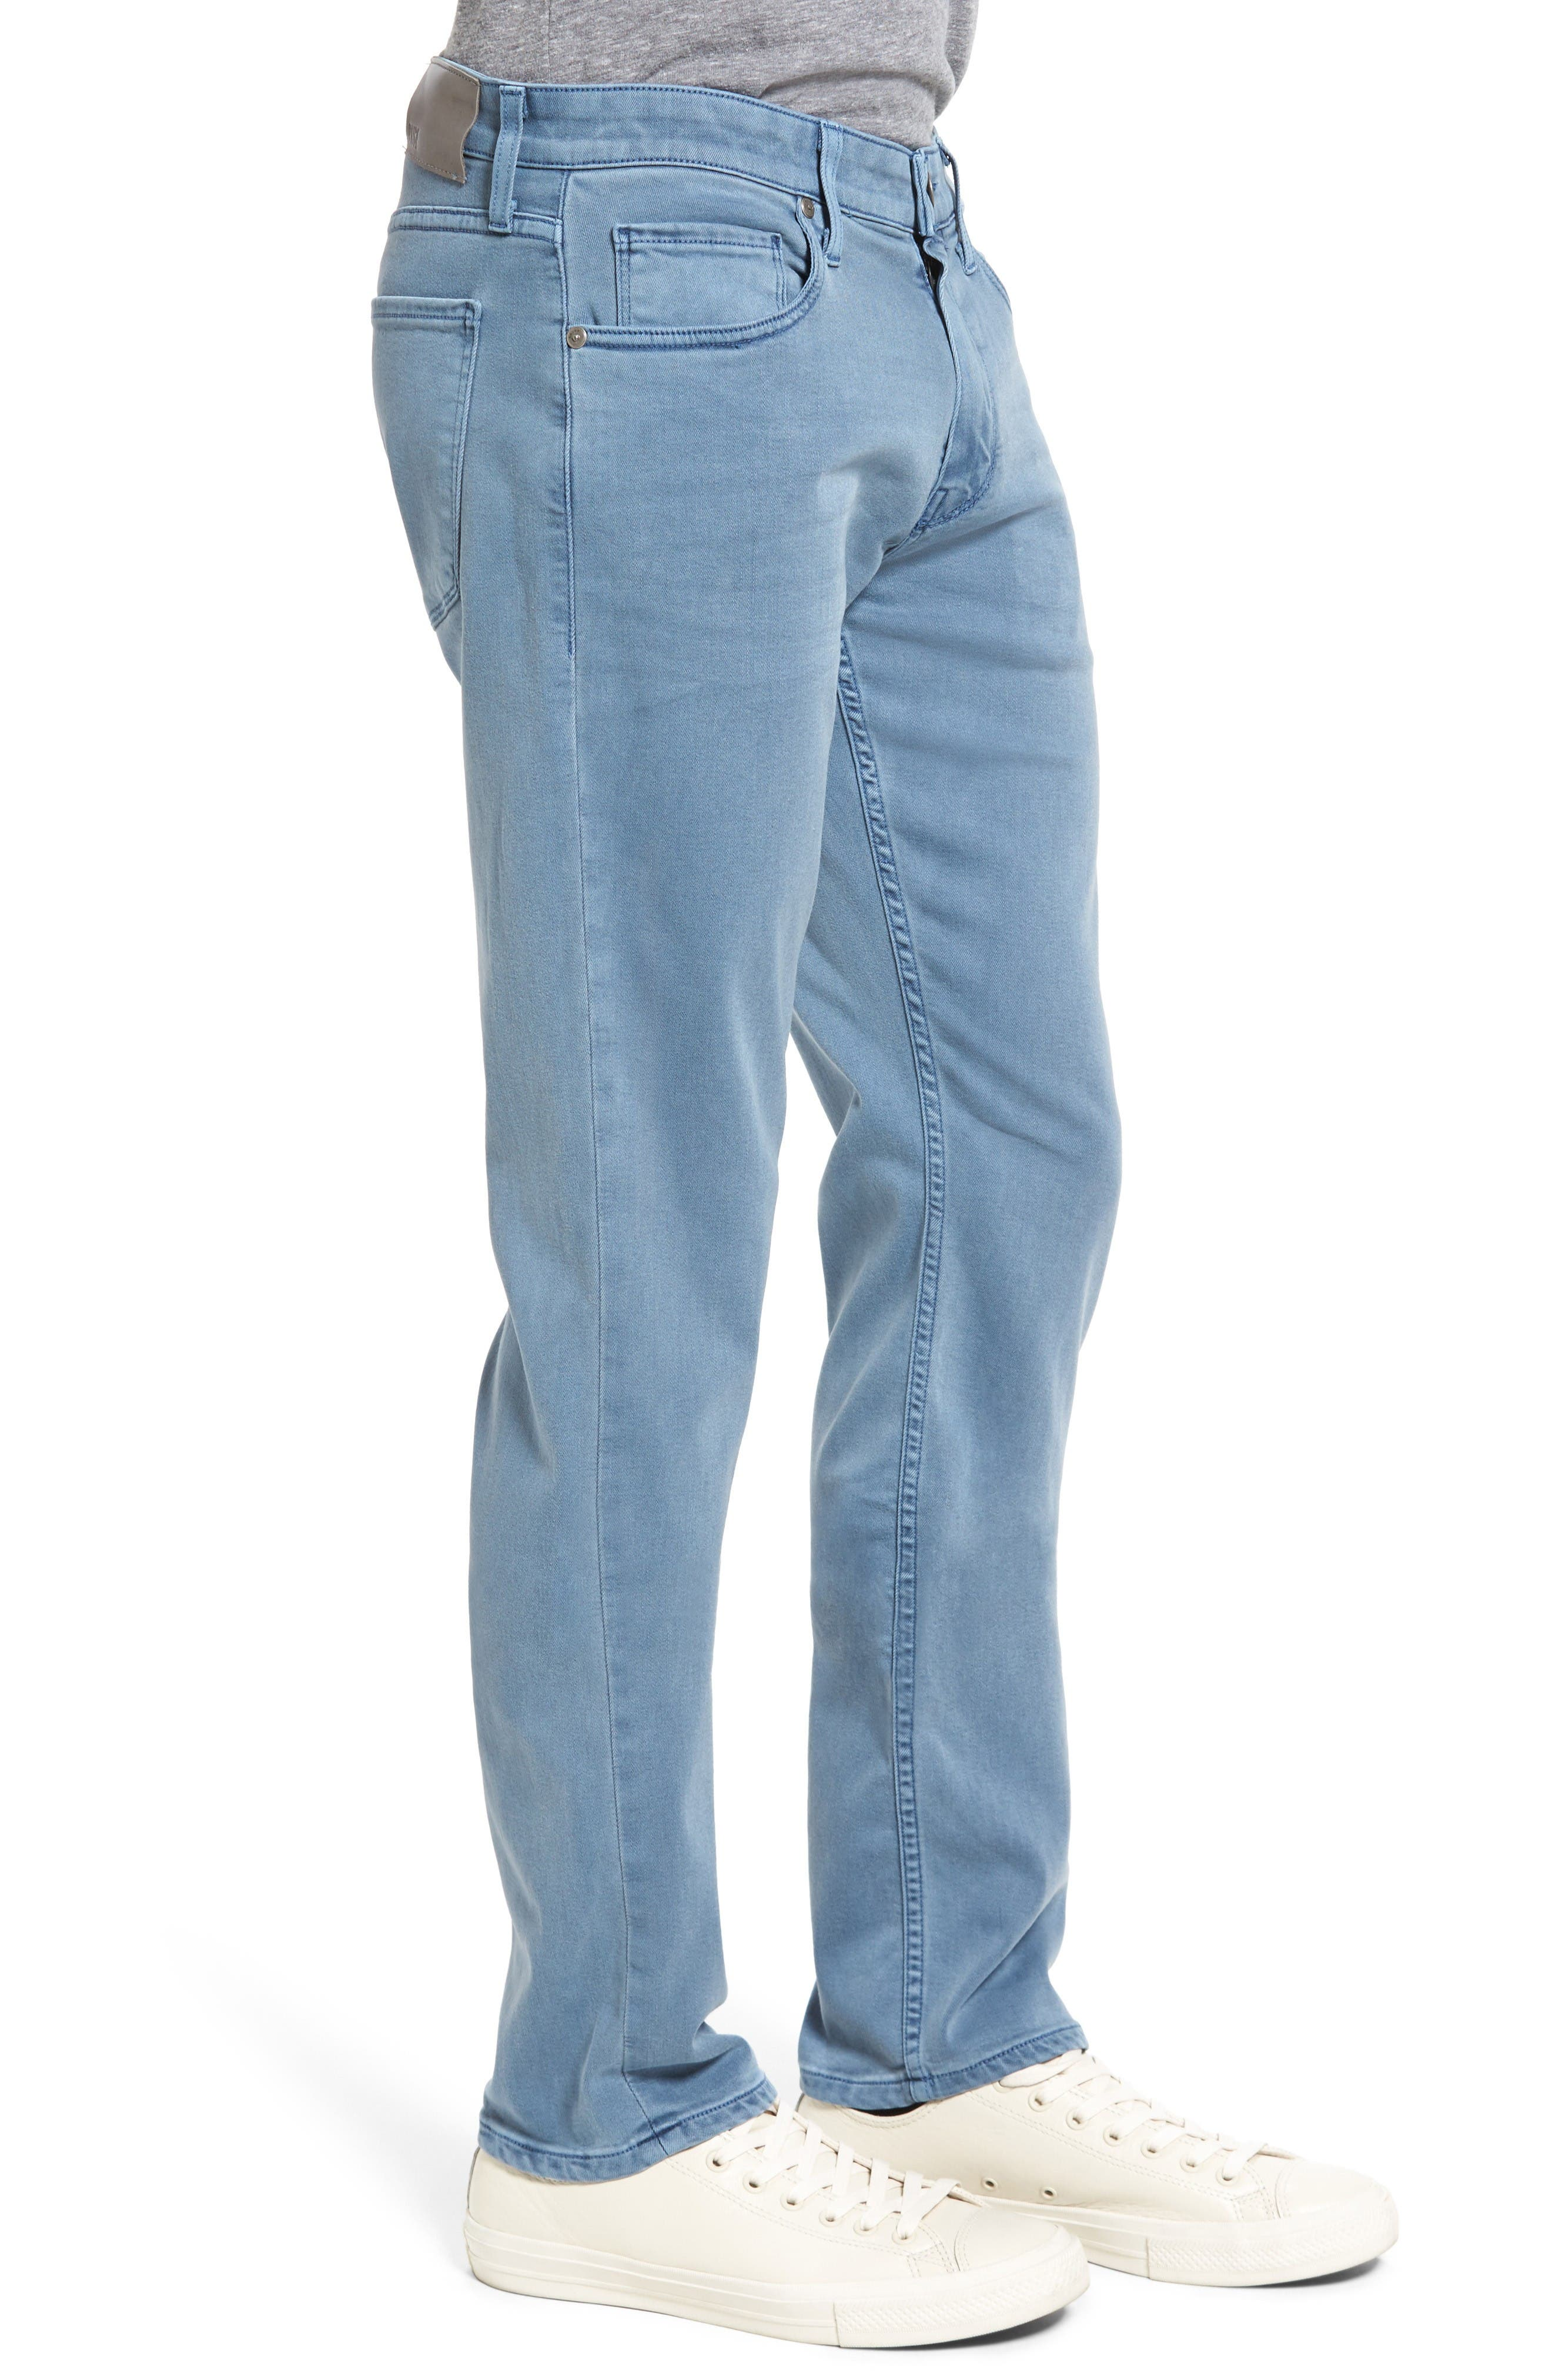 Transcend - Lennox Slim Fit Jeans,                             Alternate thumbnail 3, color,                             Seascape